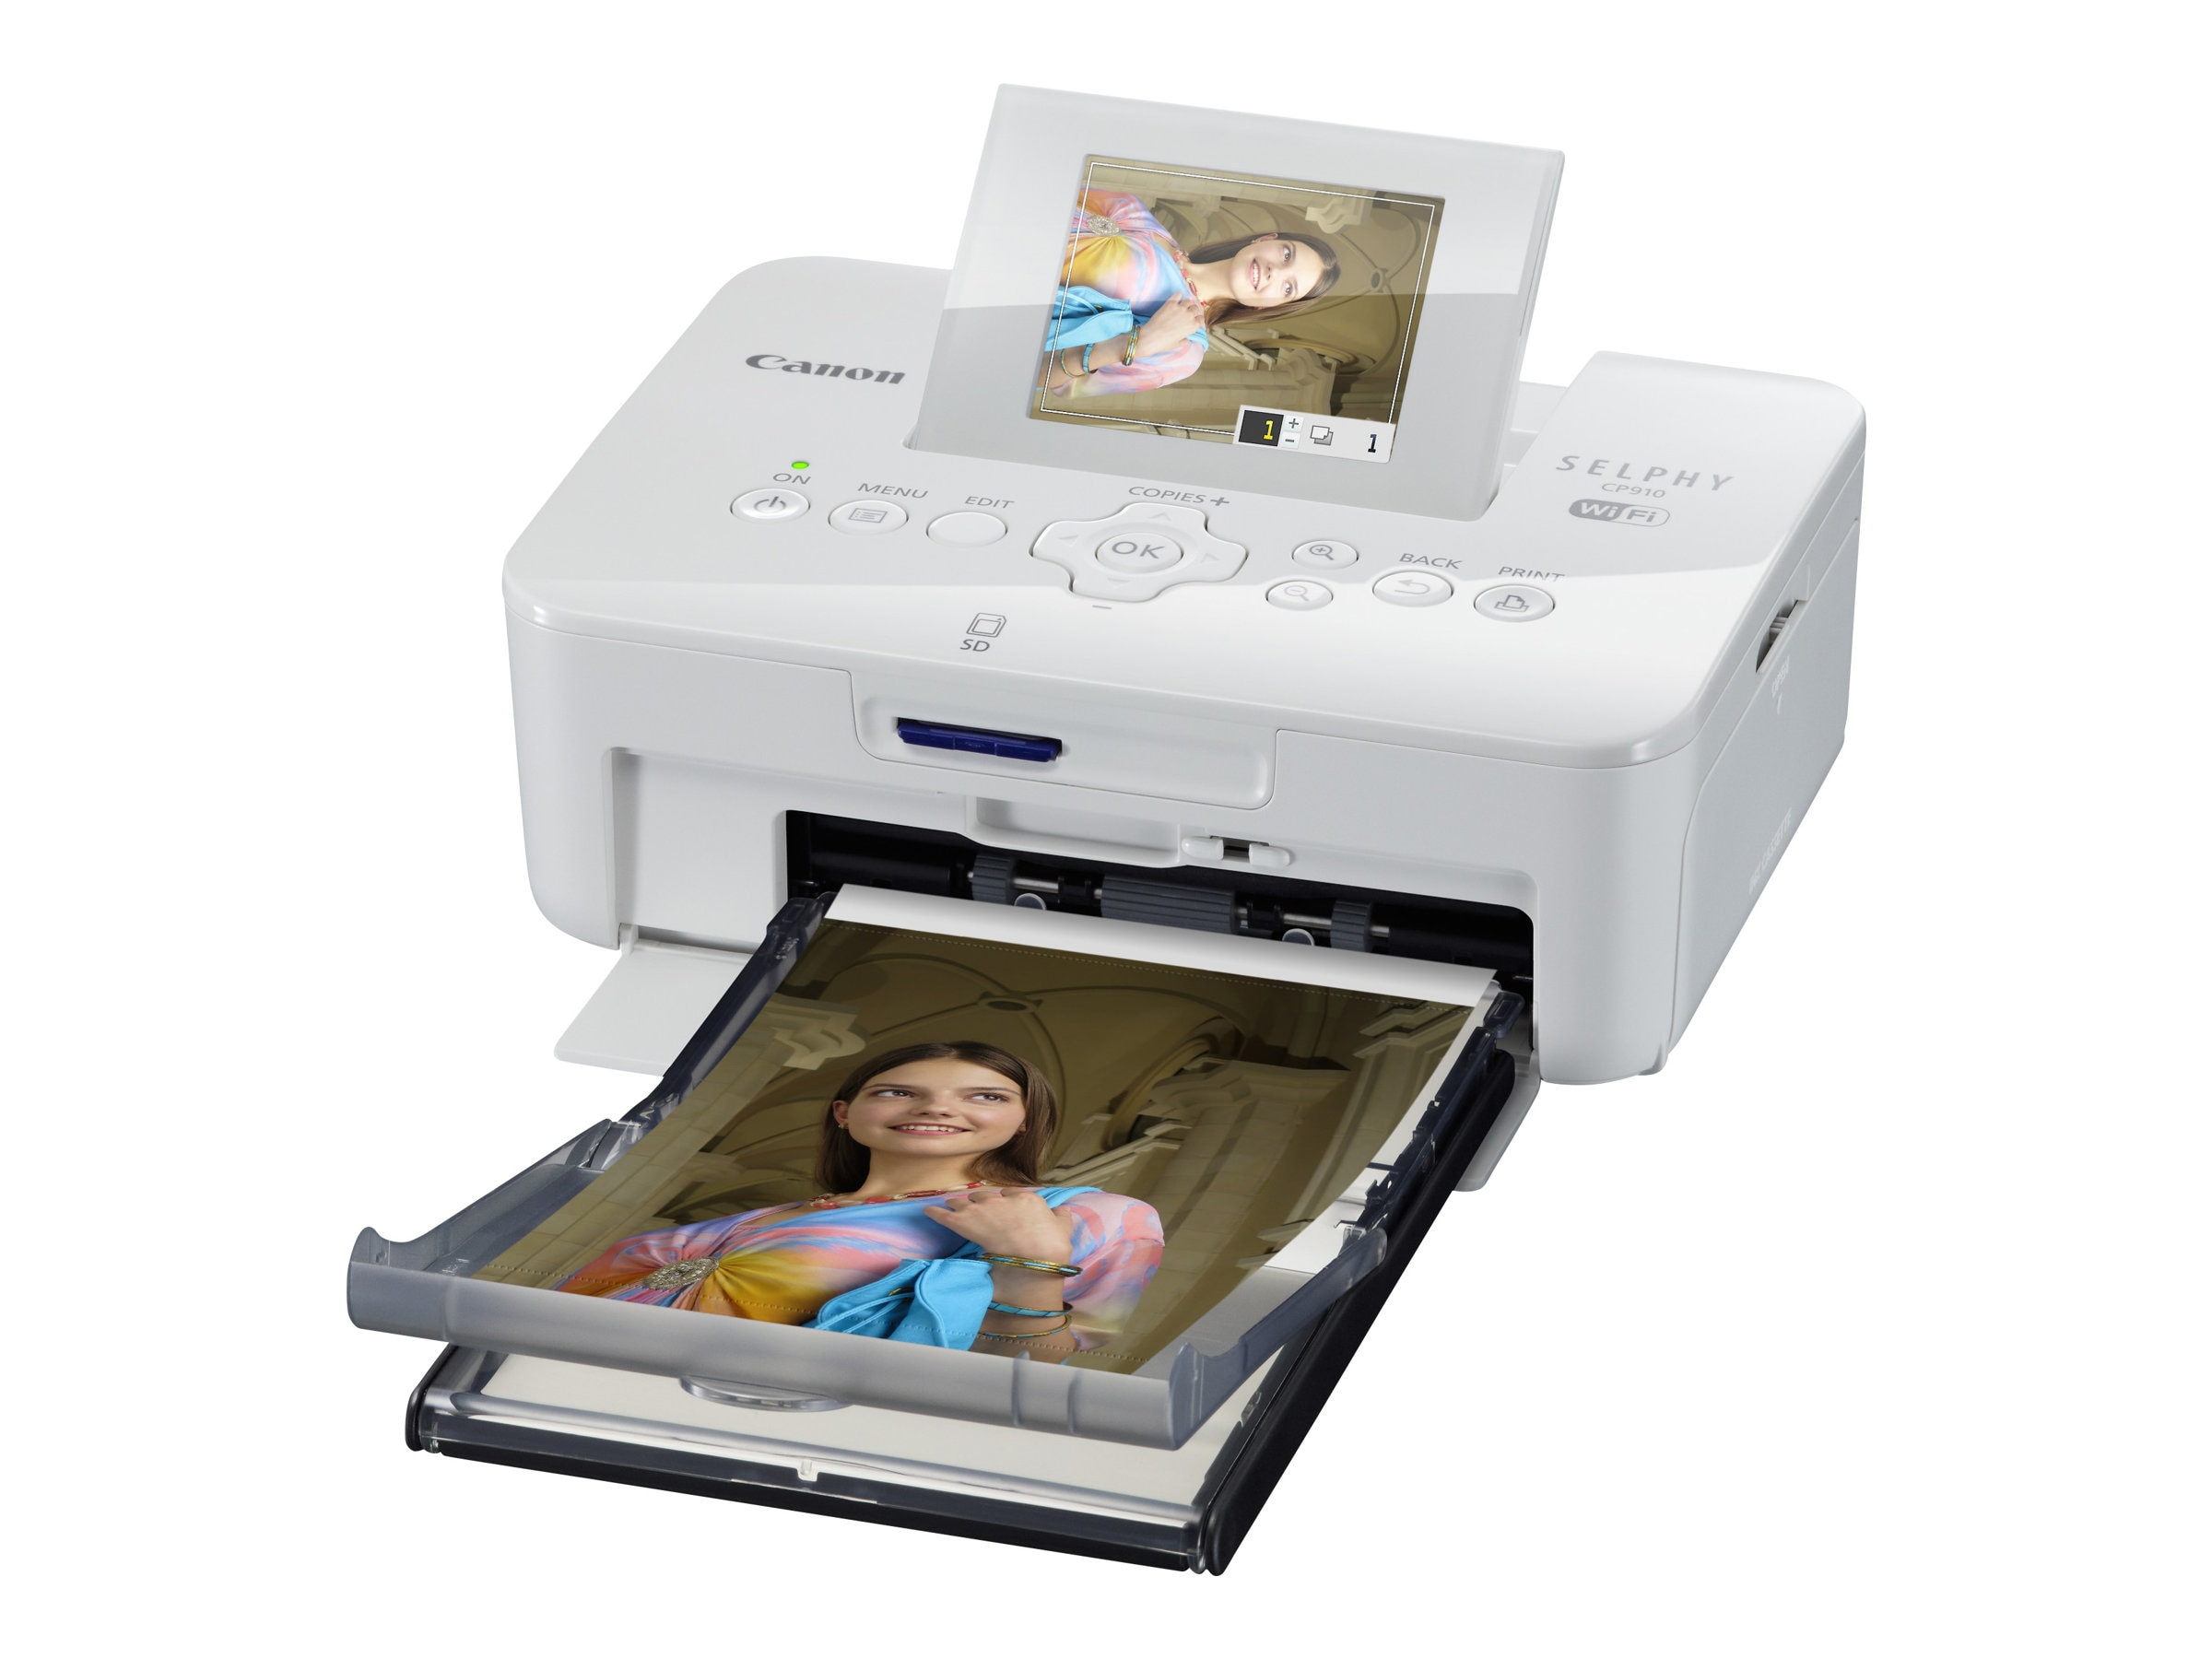 Canon SELPHY CP910 Compact Photo Printer - White, 8427B001, 16702517, Printers - Photo